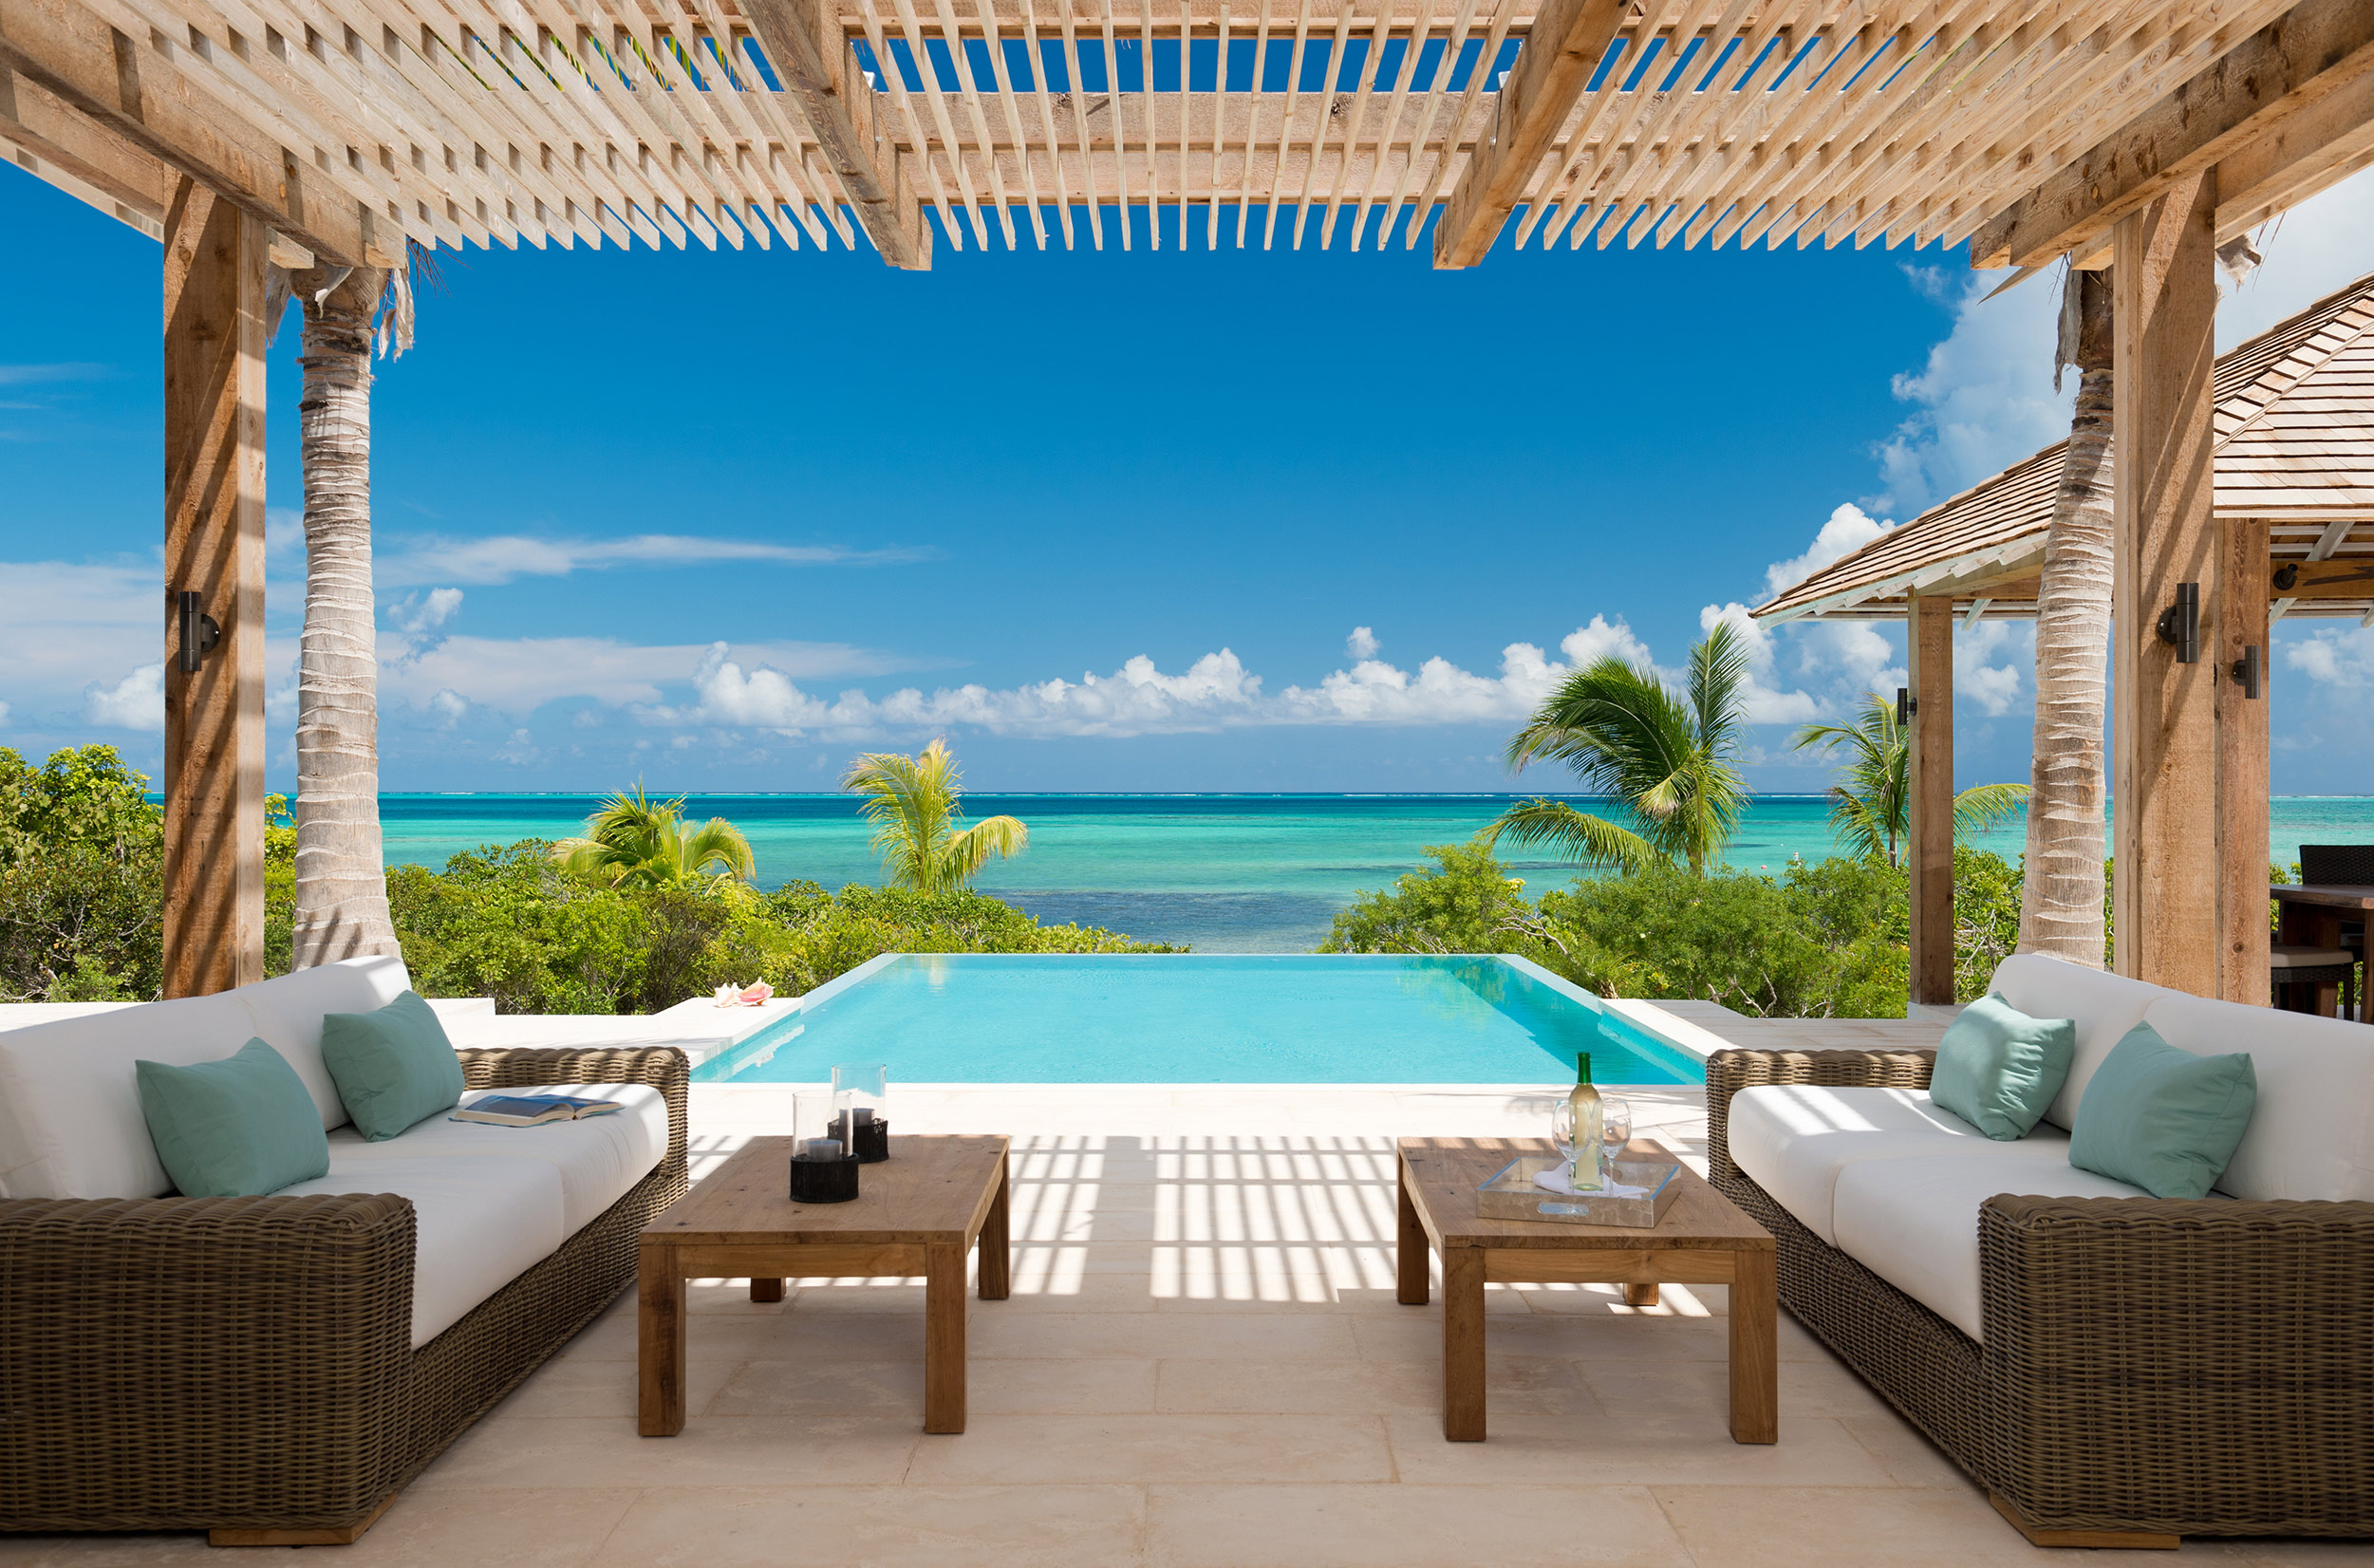 Castaway - view of the outdoor seating area and pool